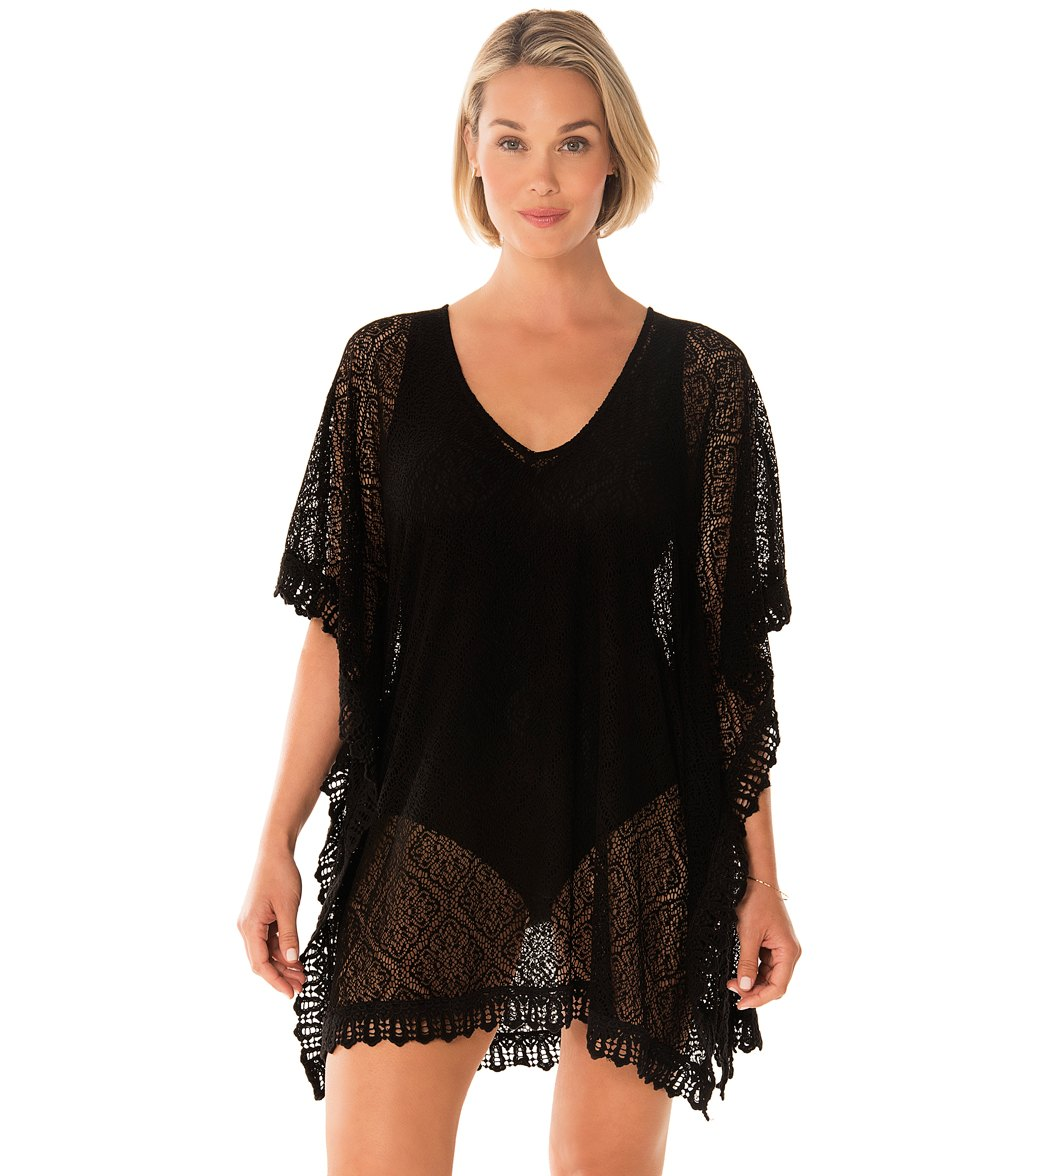 8f9e56ac313a3 Penbrooke Take Cover Poly Lace V-Neck Cover Up Dress at SwimOutlet.com -  Free Shipping